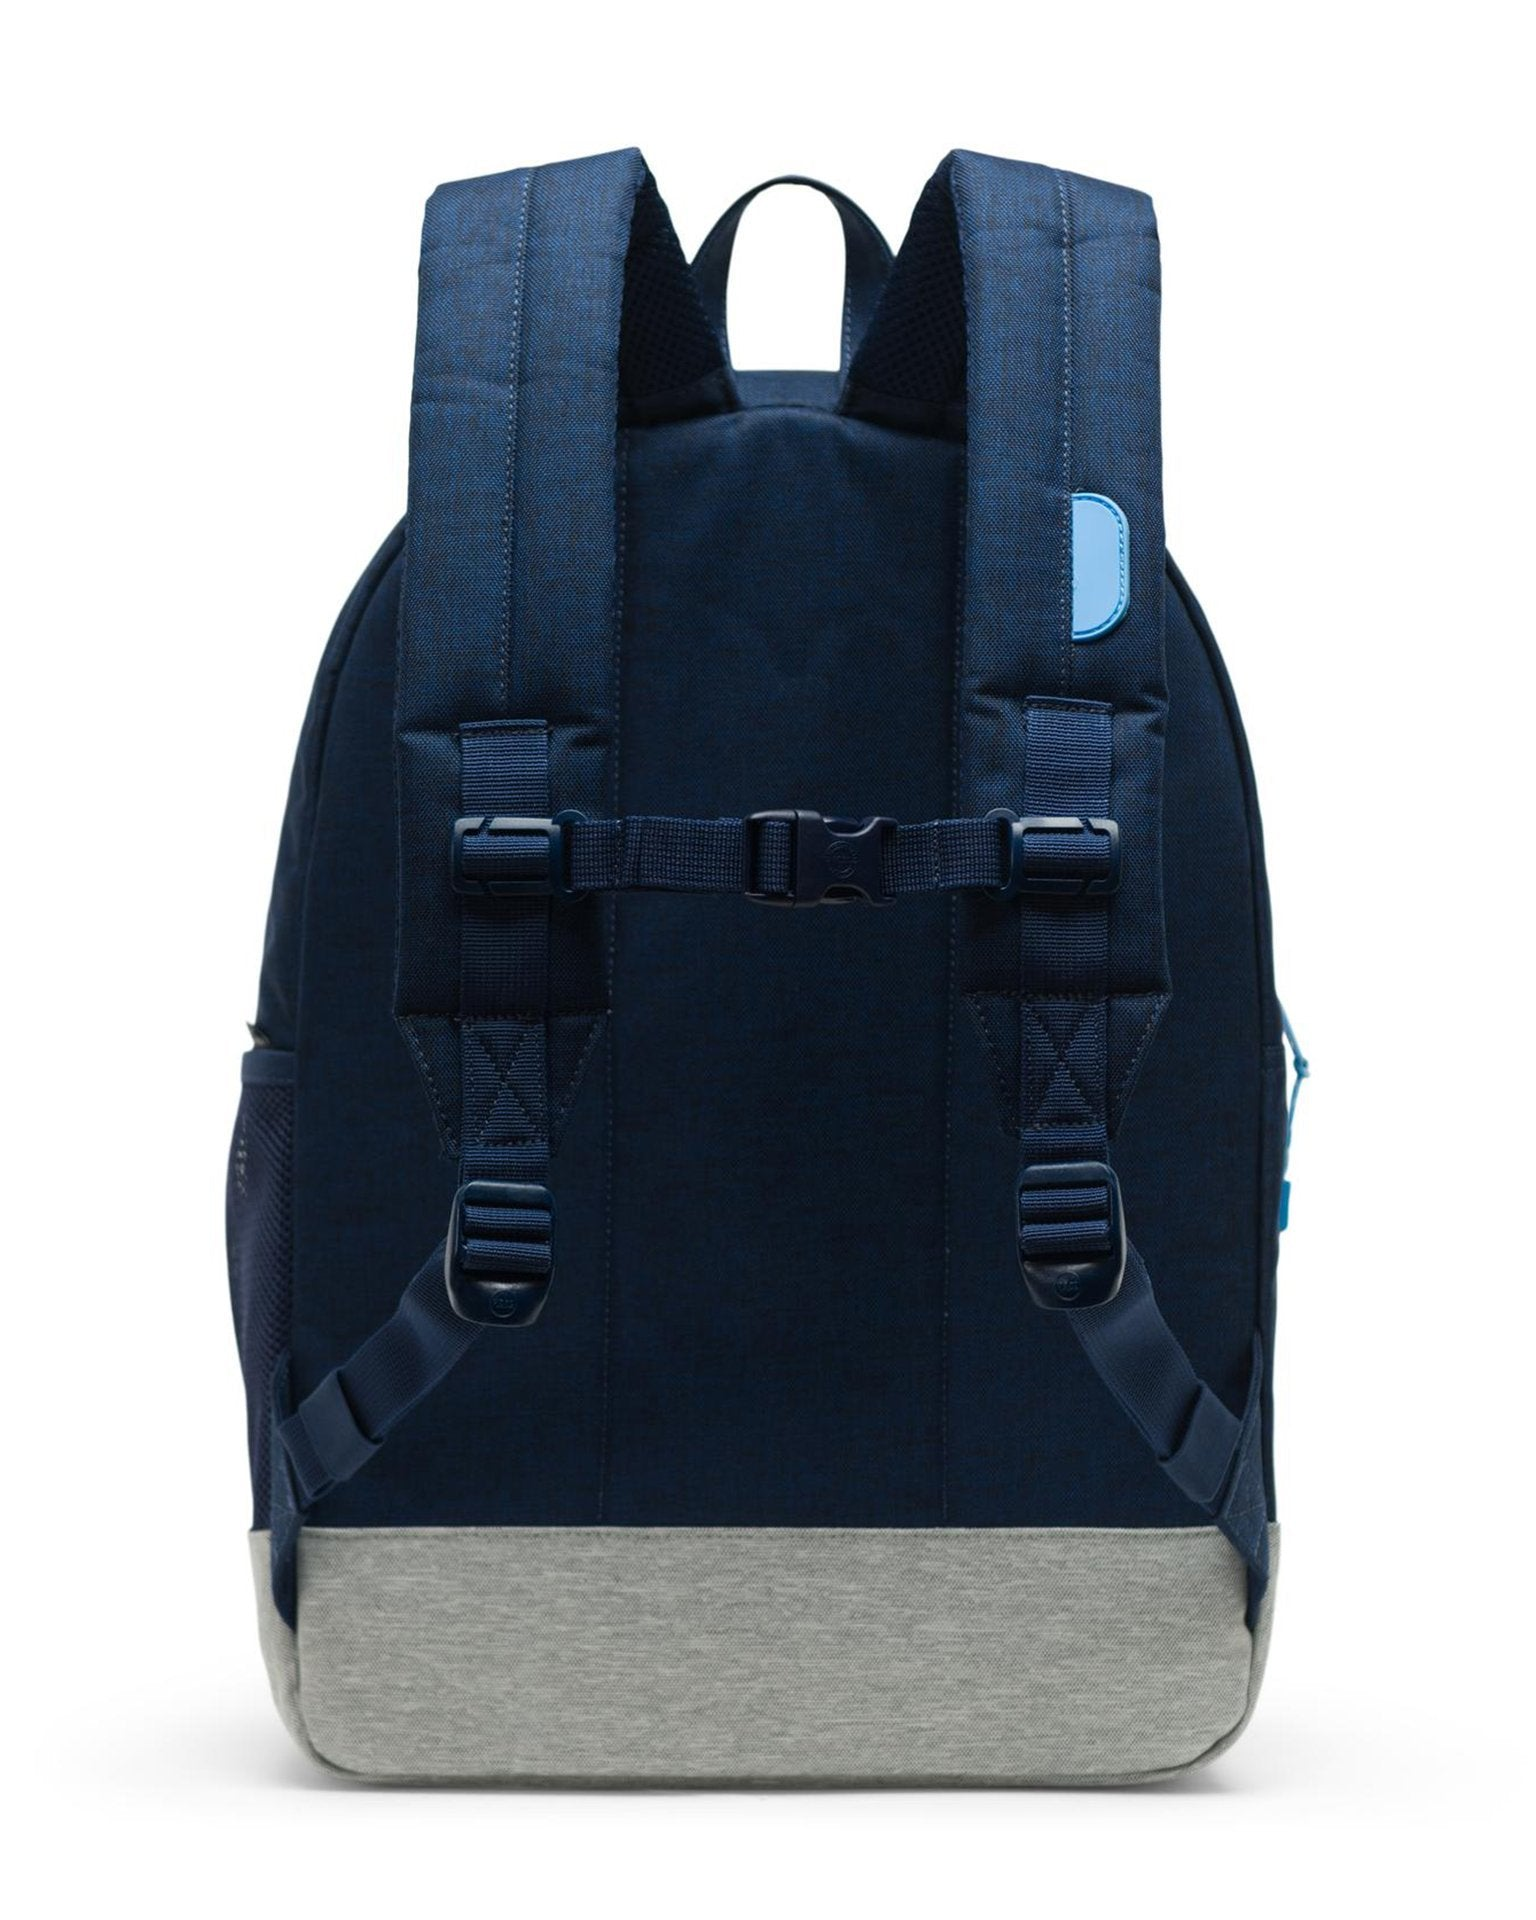 0d6ec3437b4 ... Little herschel supply co accessories youth heritage backpack xl in medieval  blue crosshatch